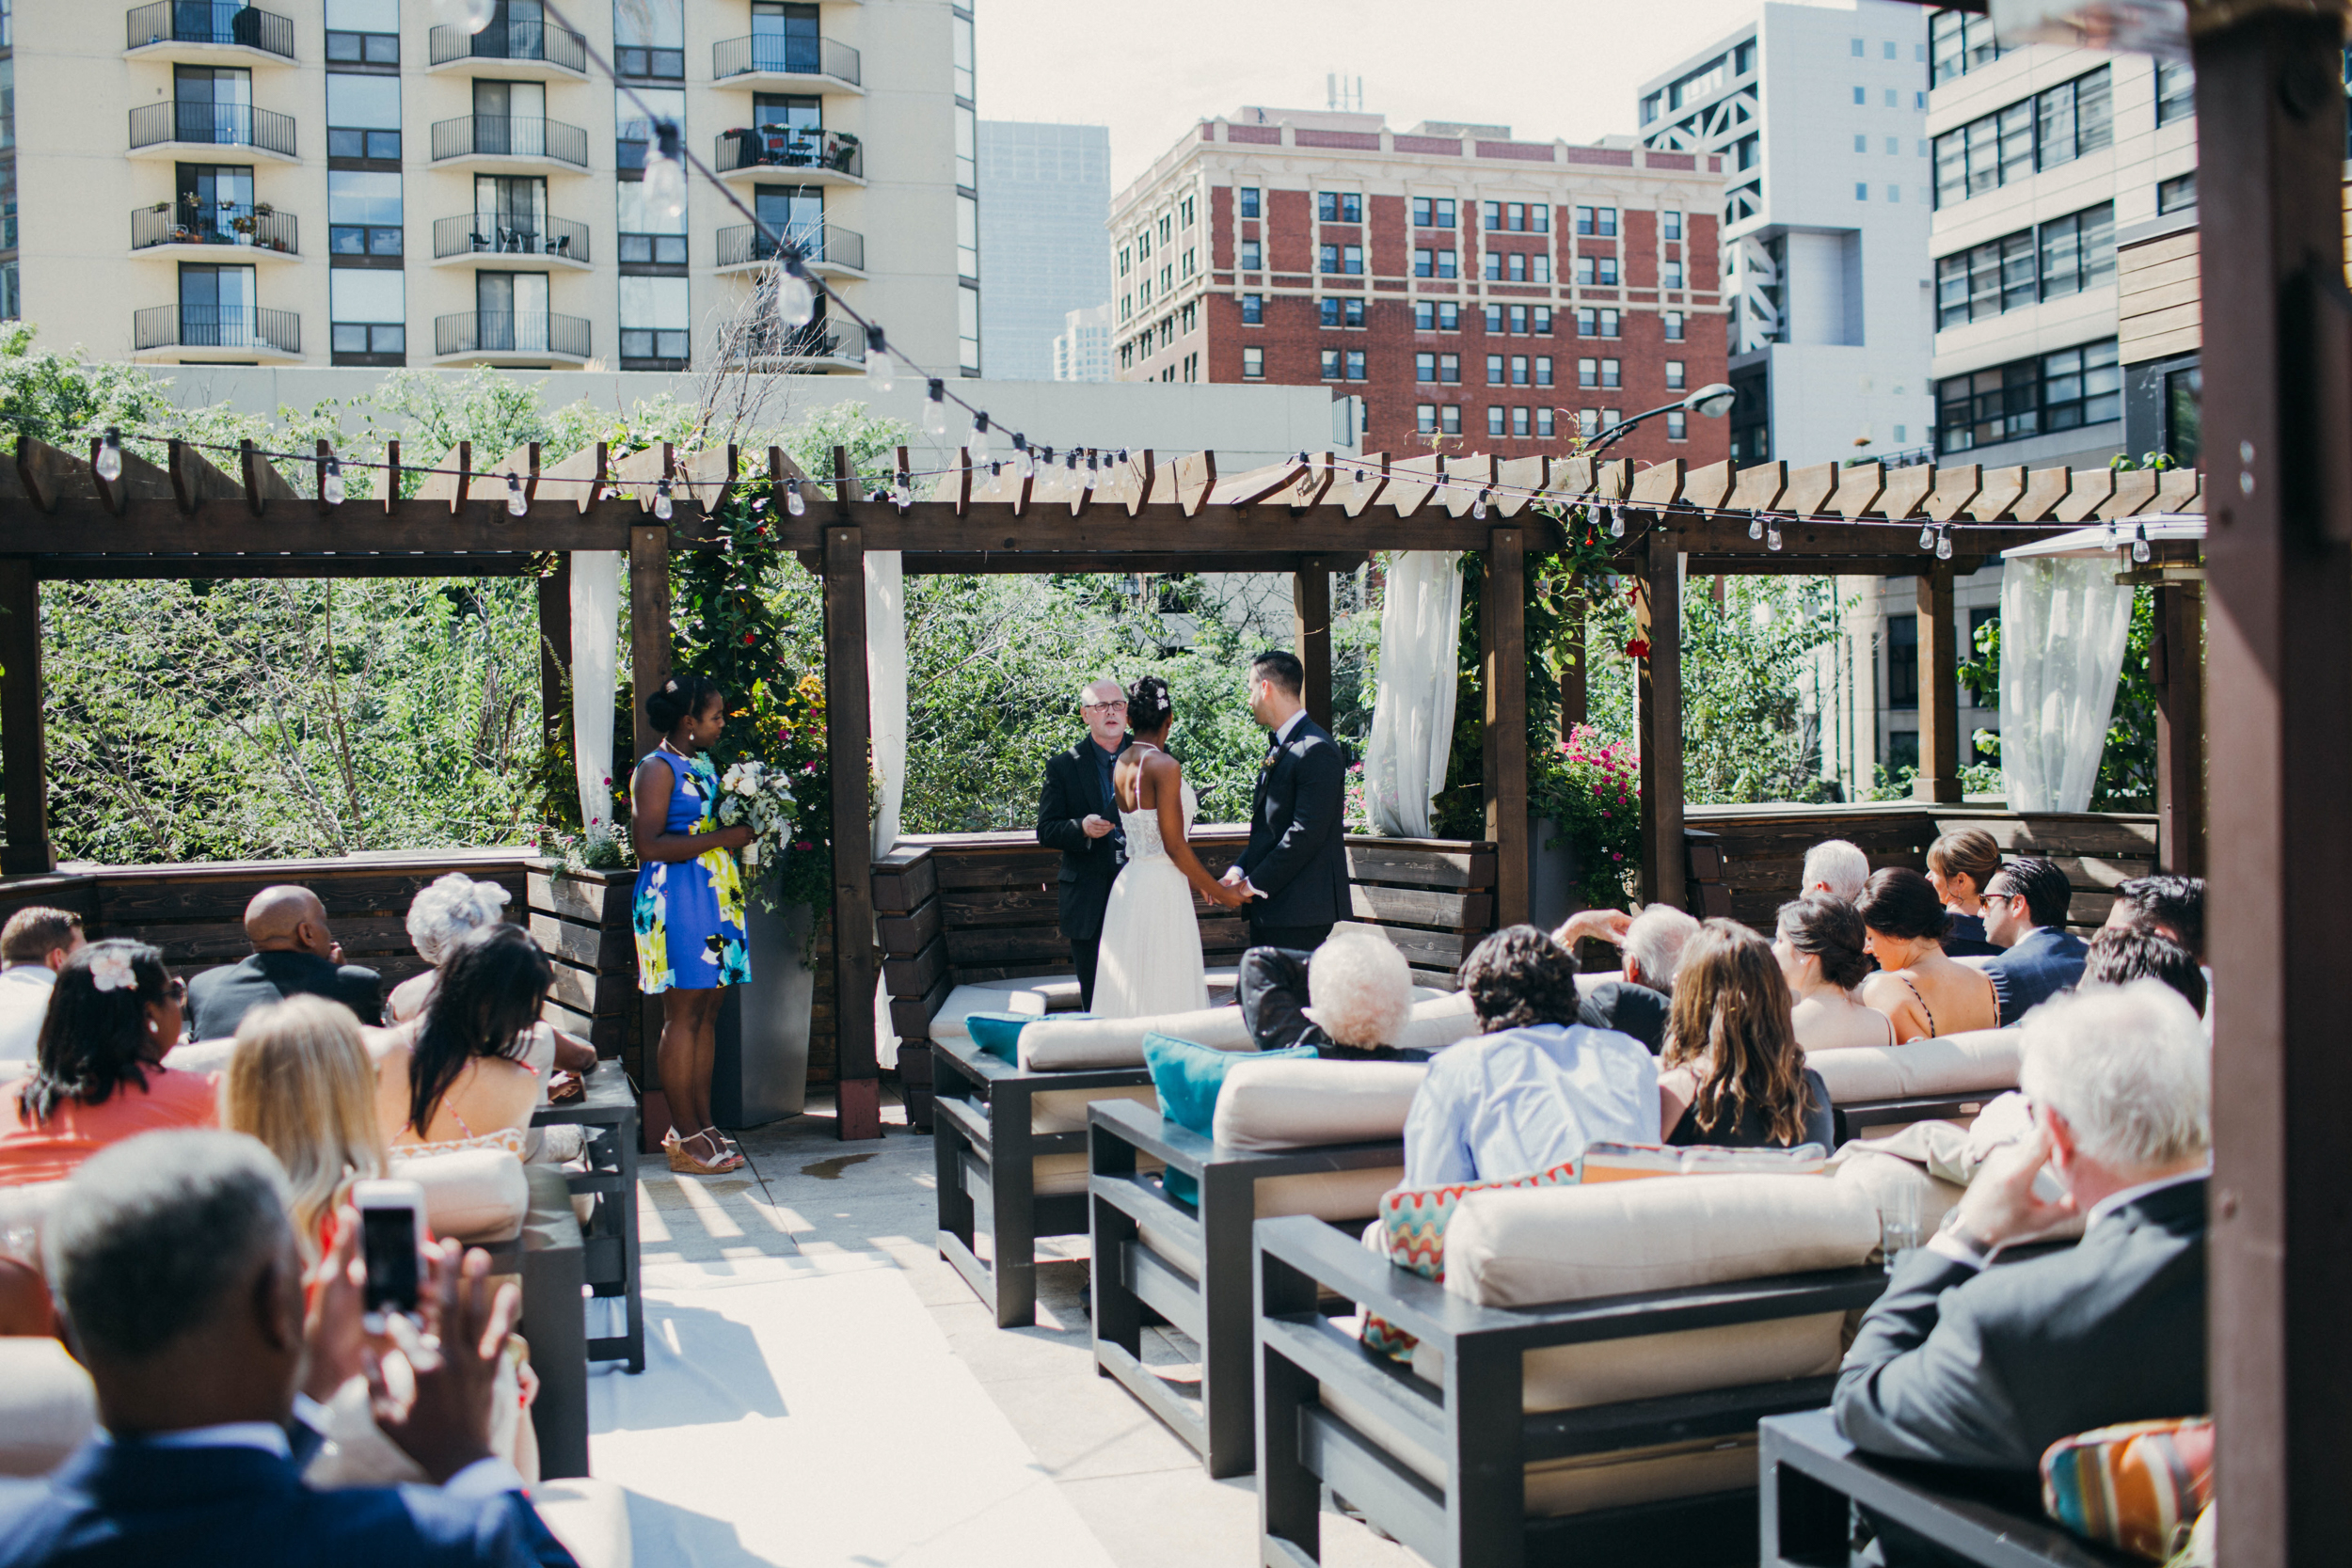 chicago.wedding.urban.intimate.zed451.lake.milton olive park-50.jpg